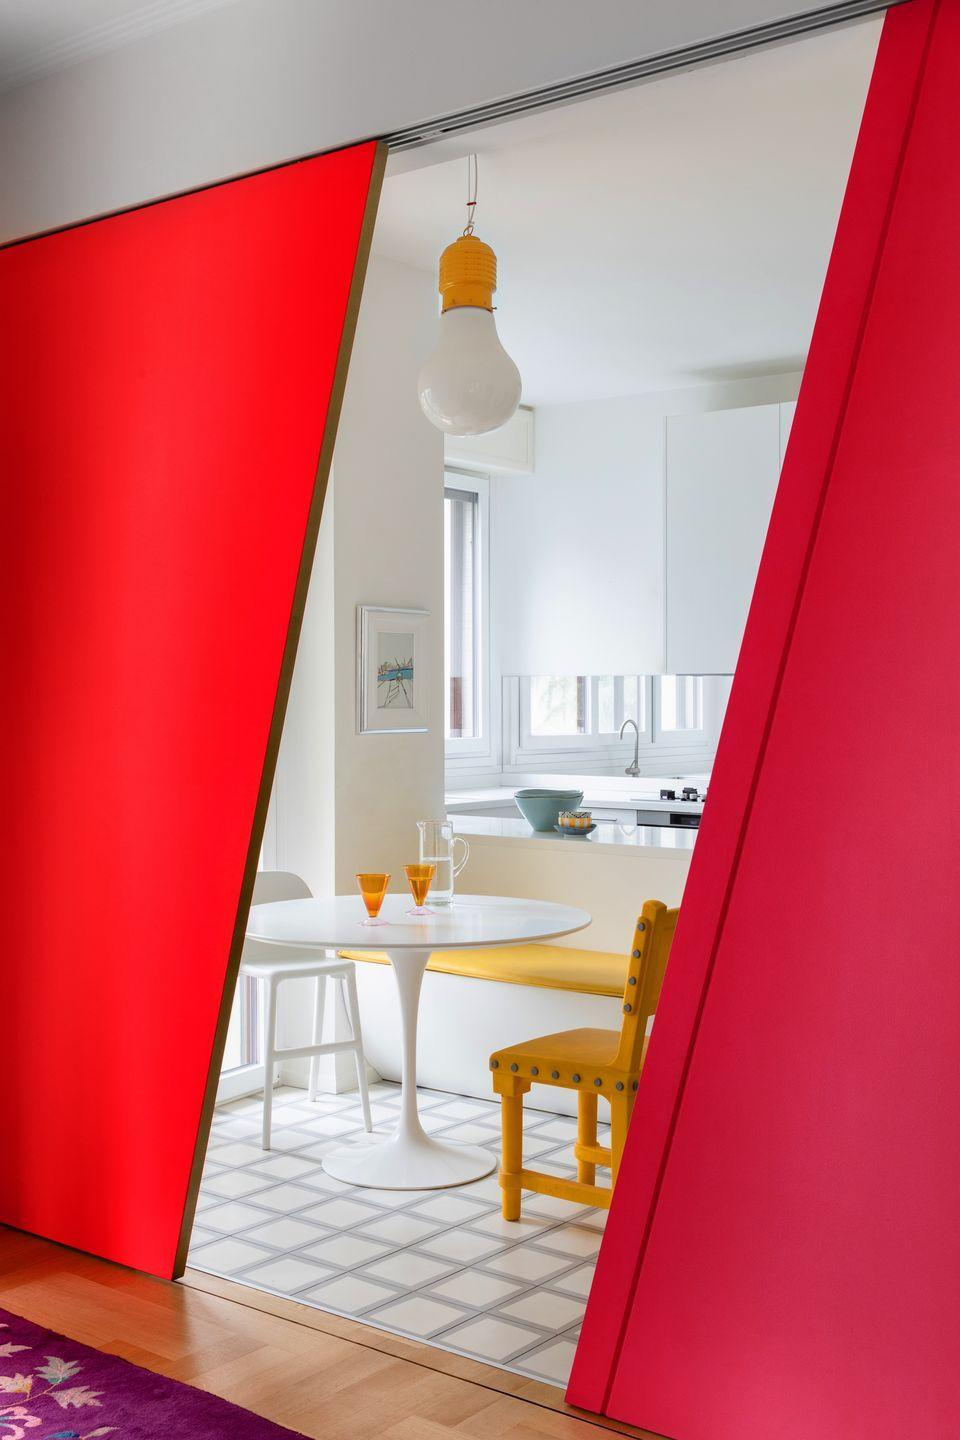 """<p>If committing your cabinetry to colour is a step too far, consider framing your kitchen in colour via adjoining walls, dividers and doors instead. The bolder the better – this punchy red screen adds a whole new perspective to the white kitchen in interior designer <a href=""""https://elledecoration.co.uk/houses/a34359655/colourful-milan-home-patricia-bohrer/"""" rel=""""nofollow noopener"""" target=""""_blank"""" data-ylk=""""slk:Patricia Bohrer's Milan home"""" class=""""link rapid-noclick-resp"""">Patricia Bohrer's Milan home</a>.</p>"""